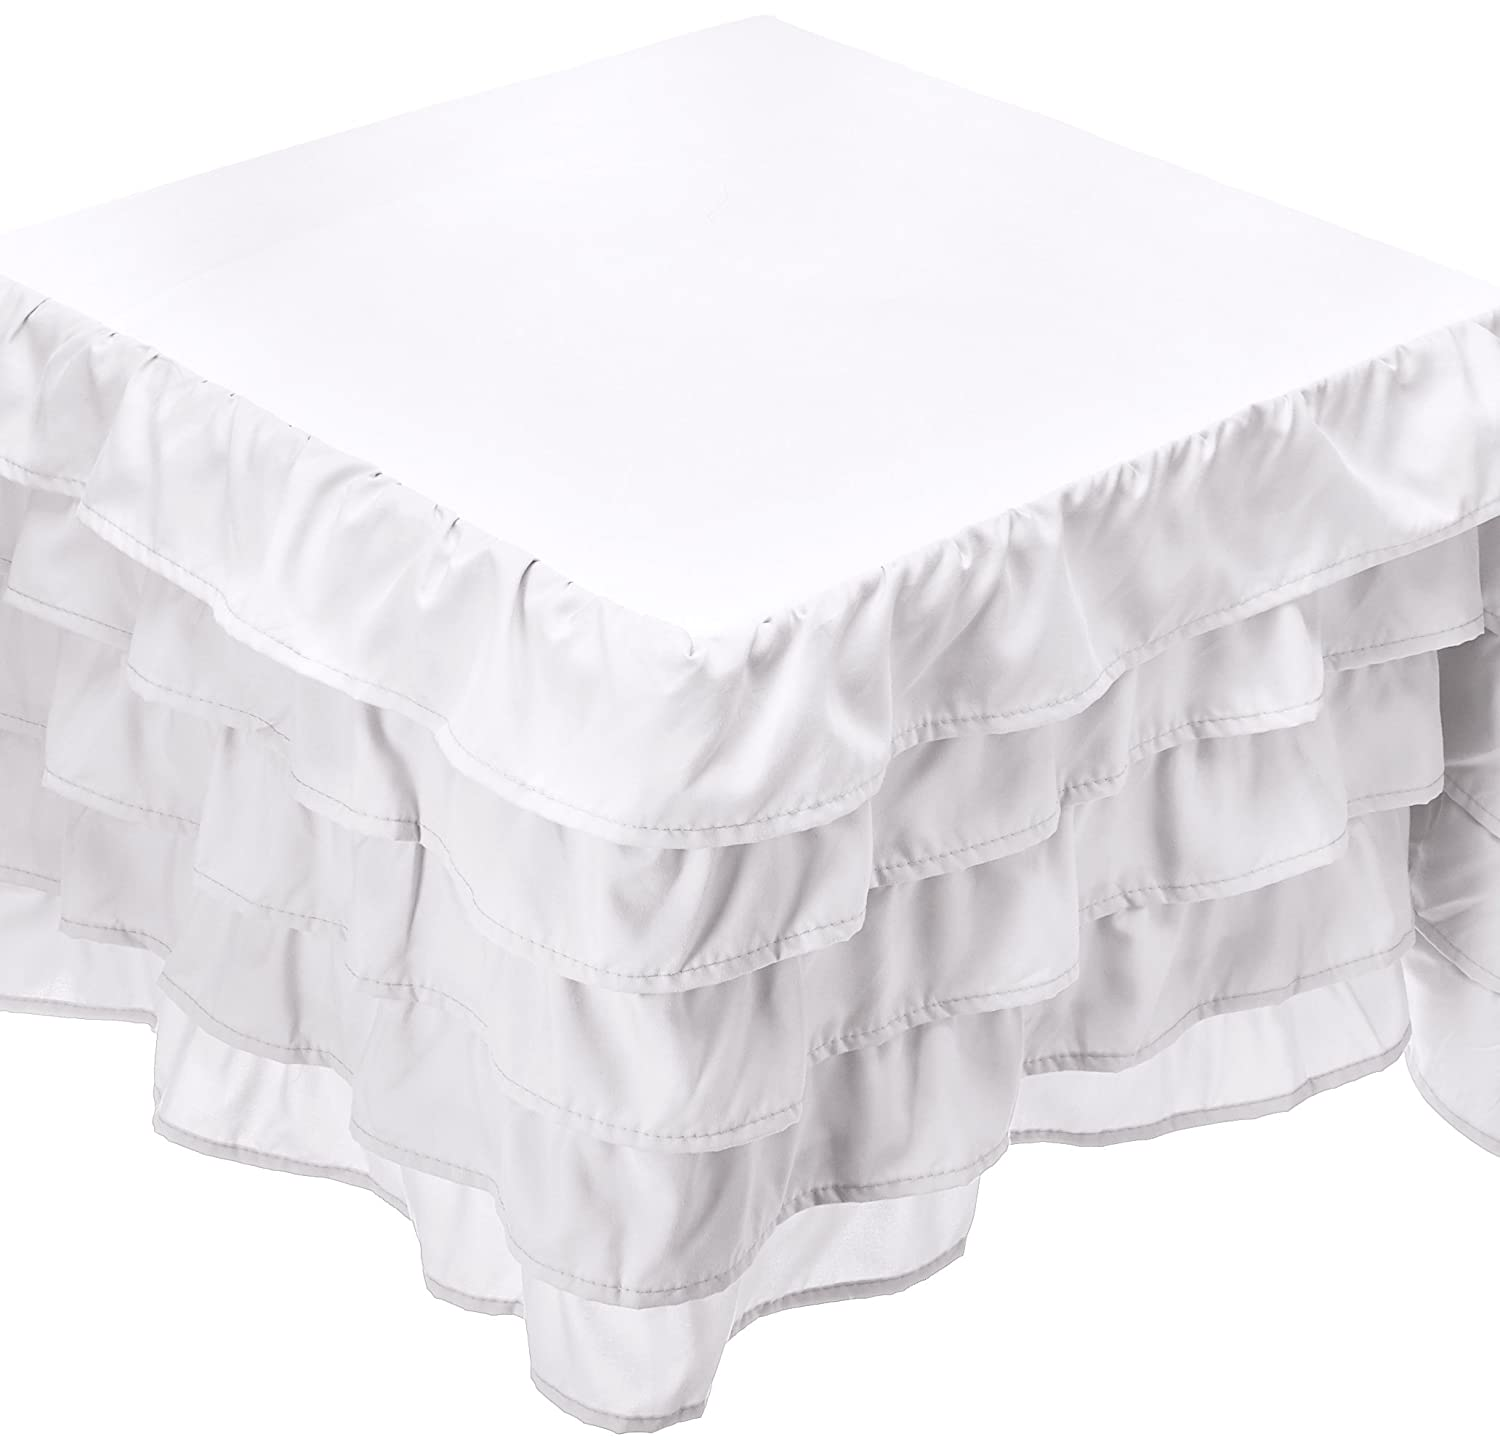 (King, White) Elegant Comfort Luxurious Premium Quality 1500 Thread Count Wrinkle and Fade Resistant Egyptian Quality Microfiber Multi-Ruffle Bed Skirt 38cm Drop, King, White B071Z6VXSZ キング|ホワイト ホワイト キング